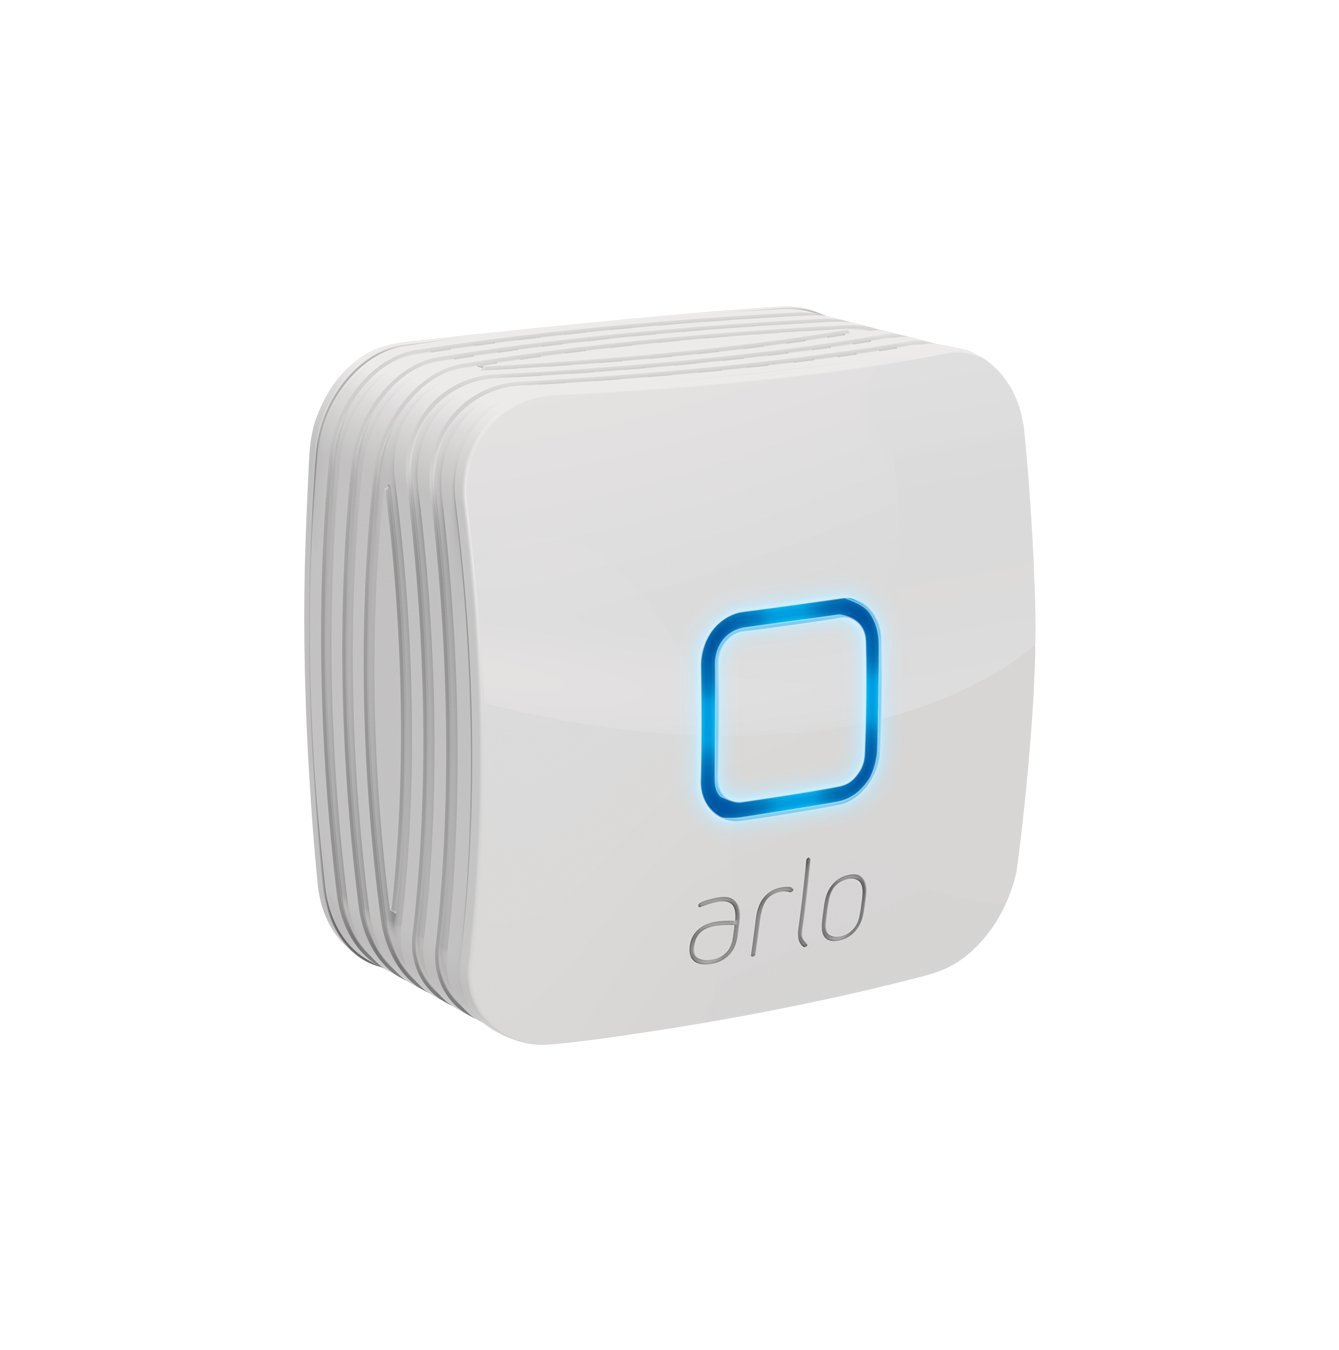 NETGEAR Add-on Bridge for Arlo Smart Home Security Lights. Indoor use only, Security Light and camera not included (ABB1000)